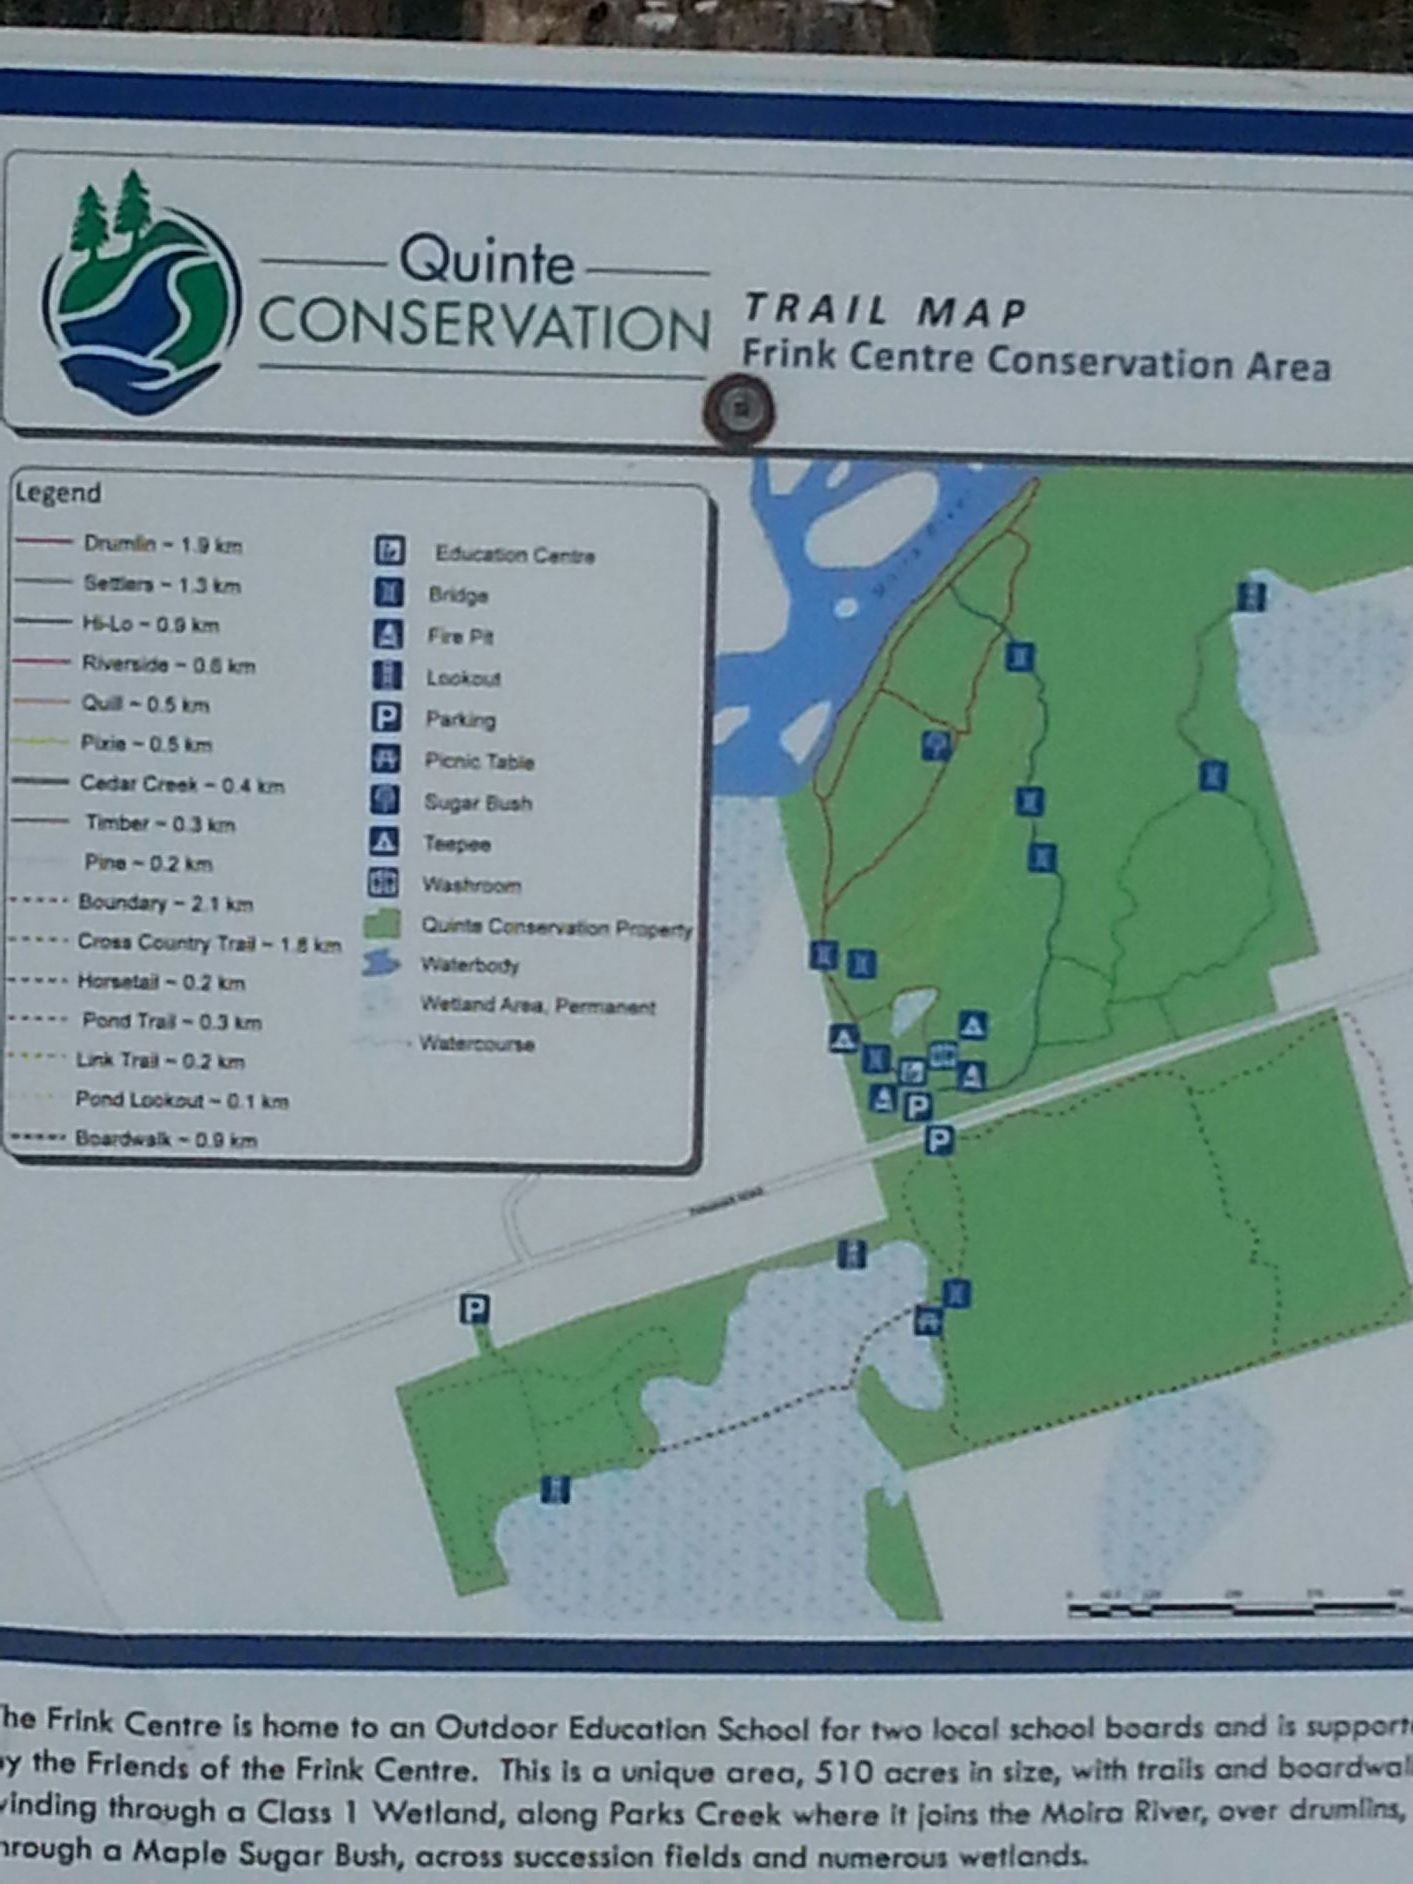 This is a map of the frink center. It pinpoints its location on the map.